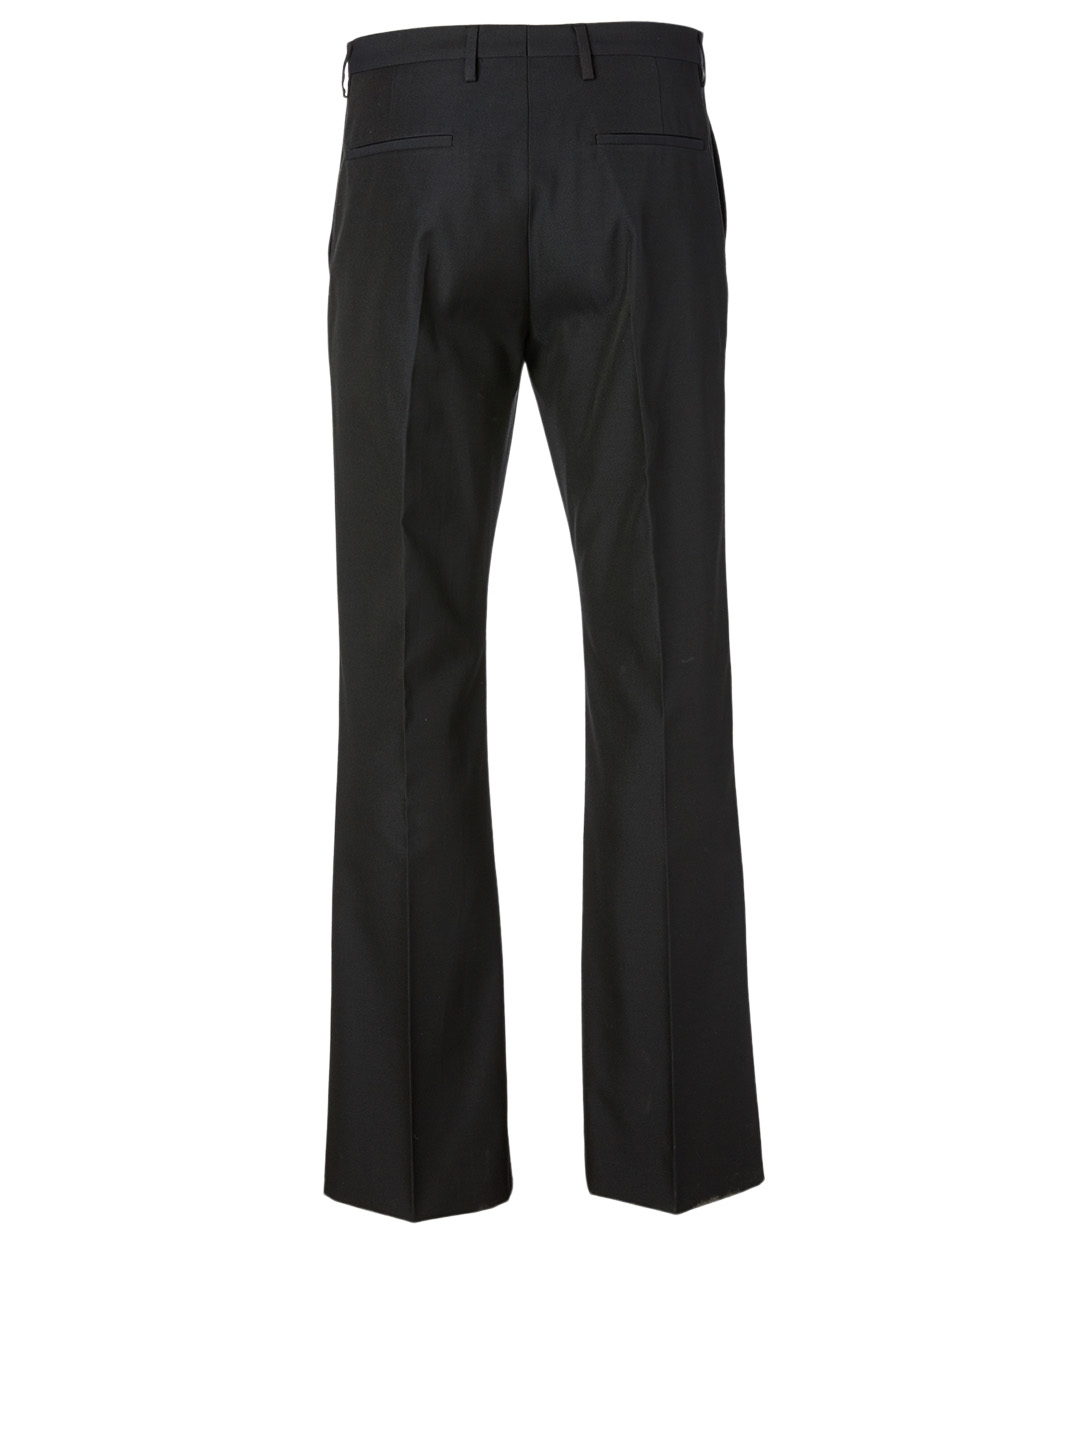 ACNE STUDIOS Cotton-Blend Pants Men's Black